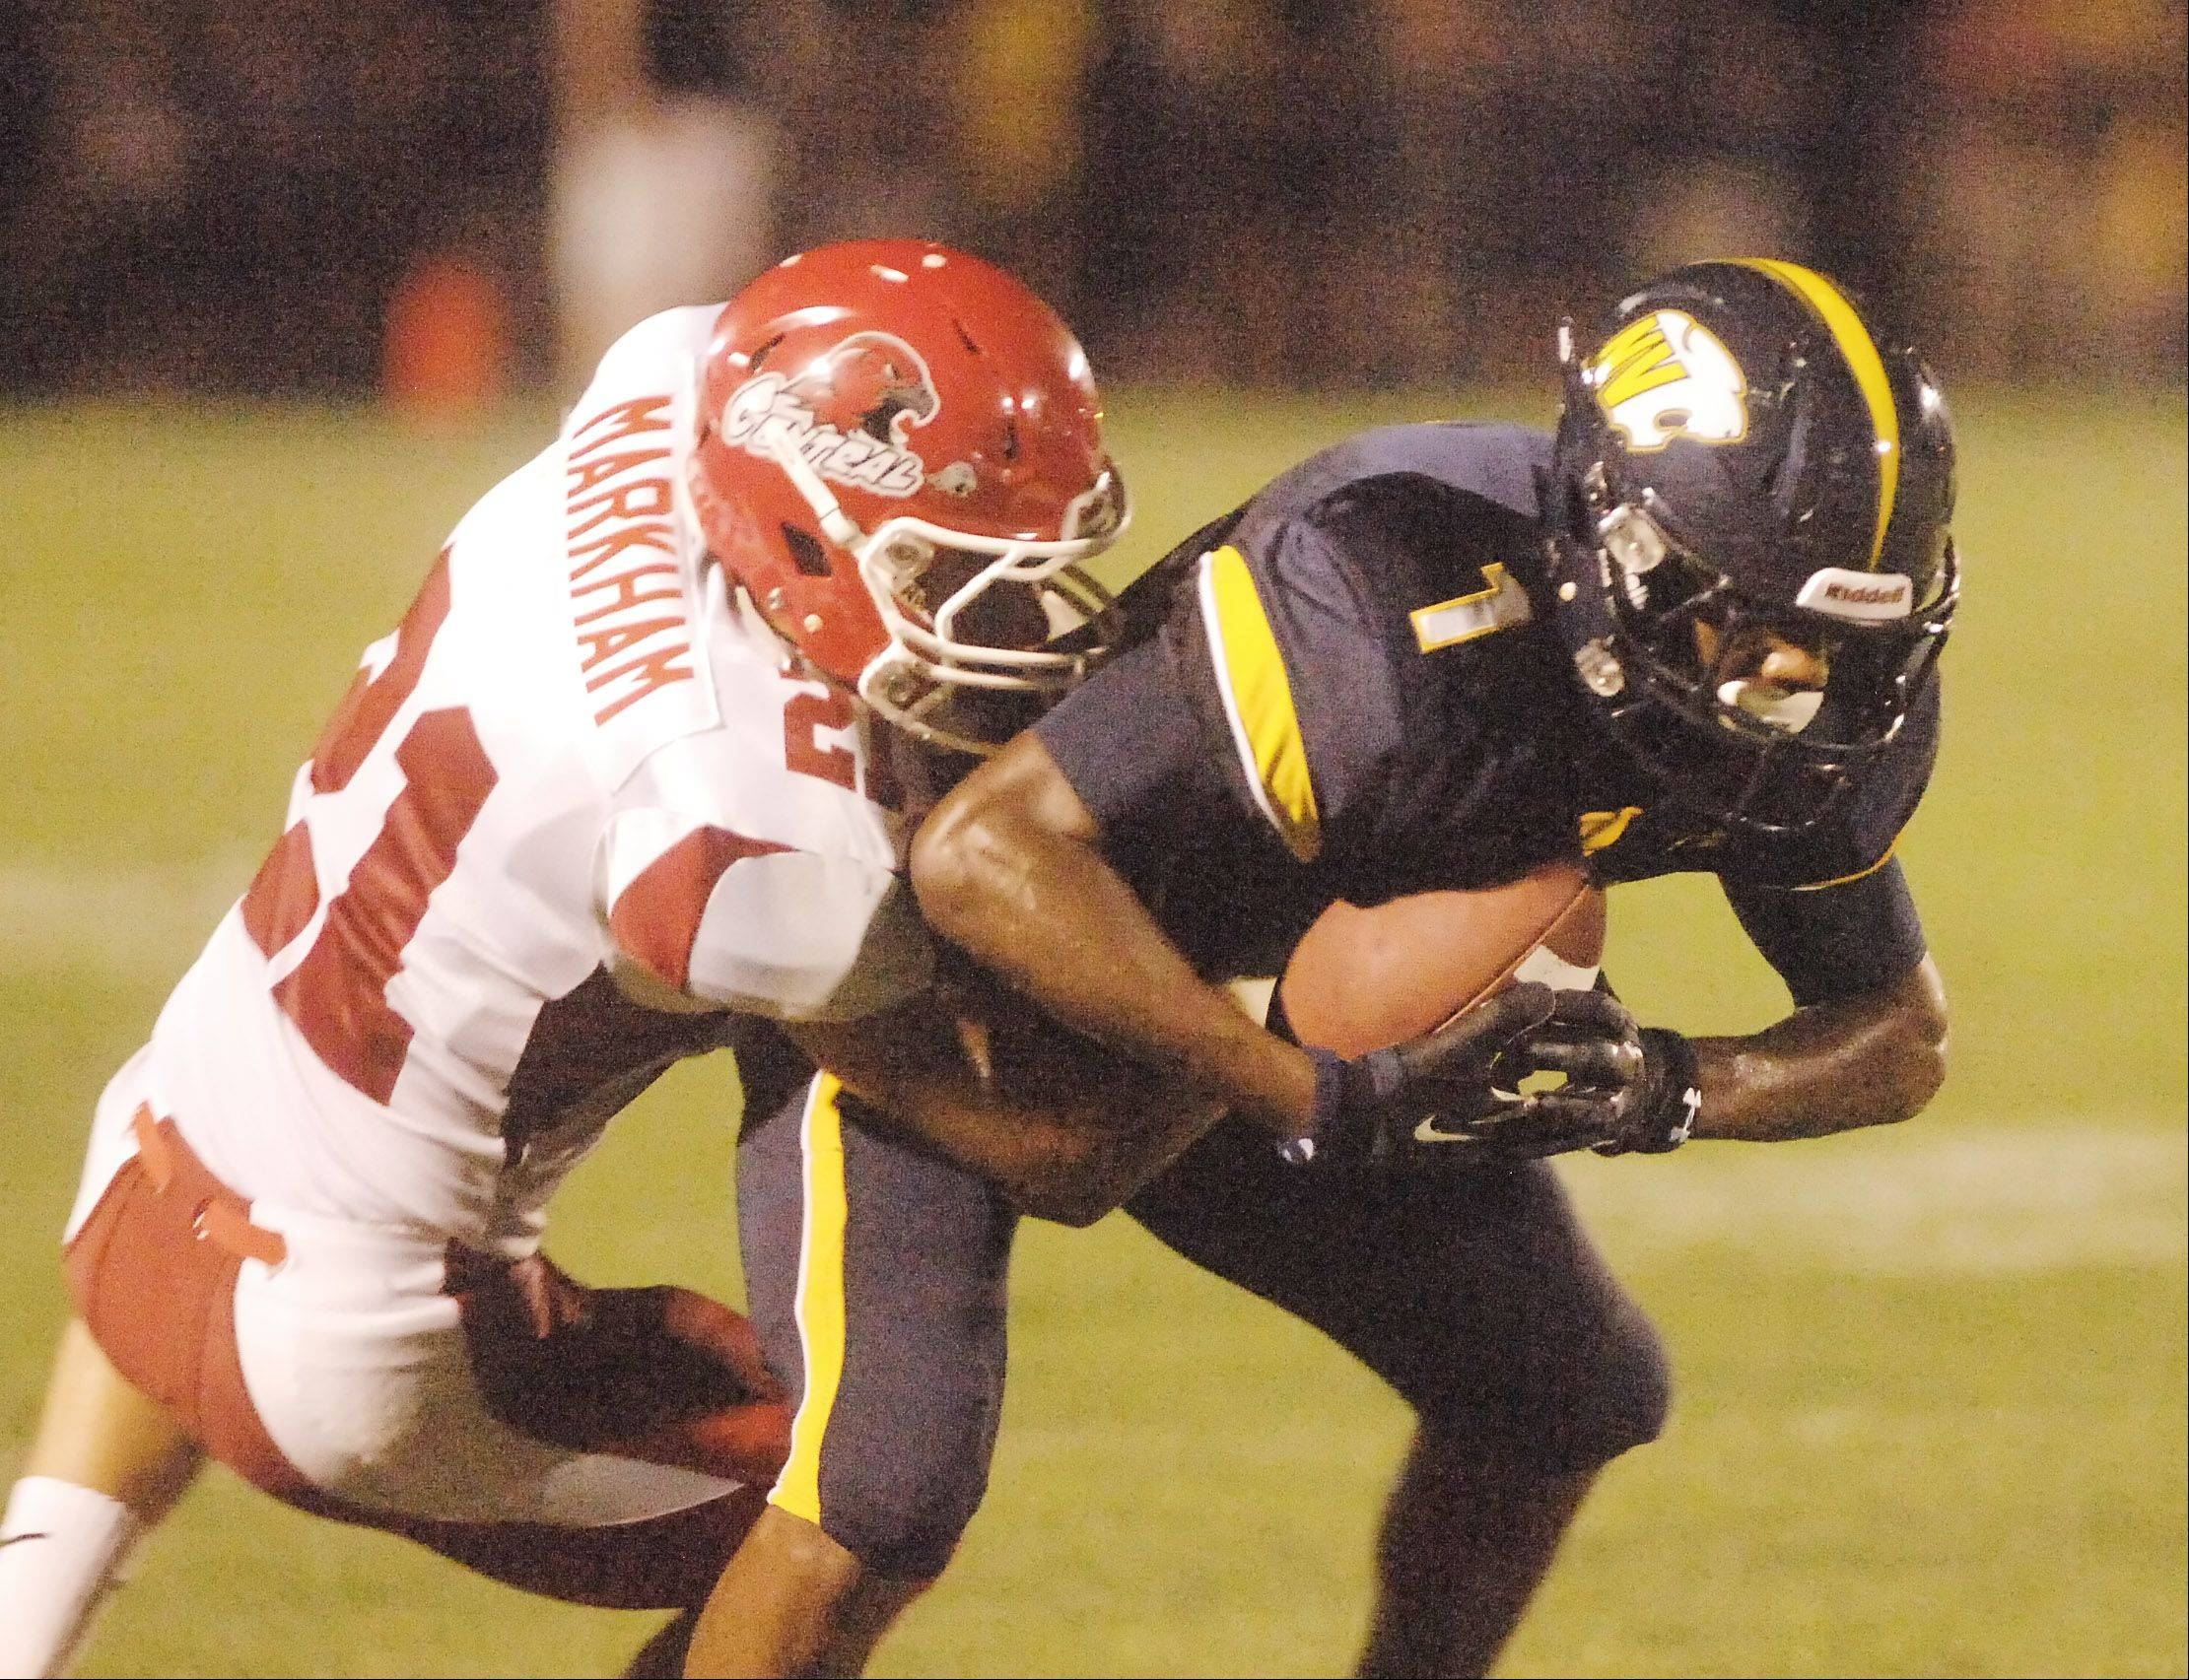 Paul Michna/pmichna@dailyherald.comJustin Markham of Naperville Central pulls down Reggie Ervin of Neuqua Vally during the Naperville Central at Neuqua Valley football game Friday.